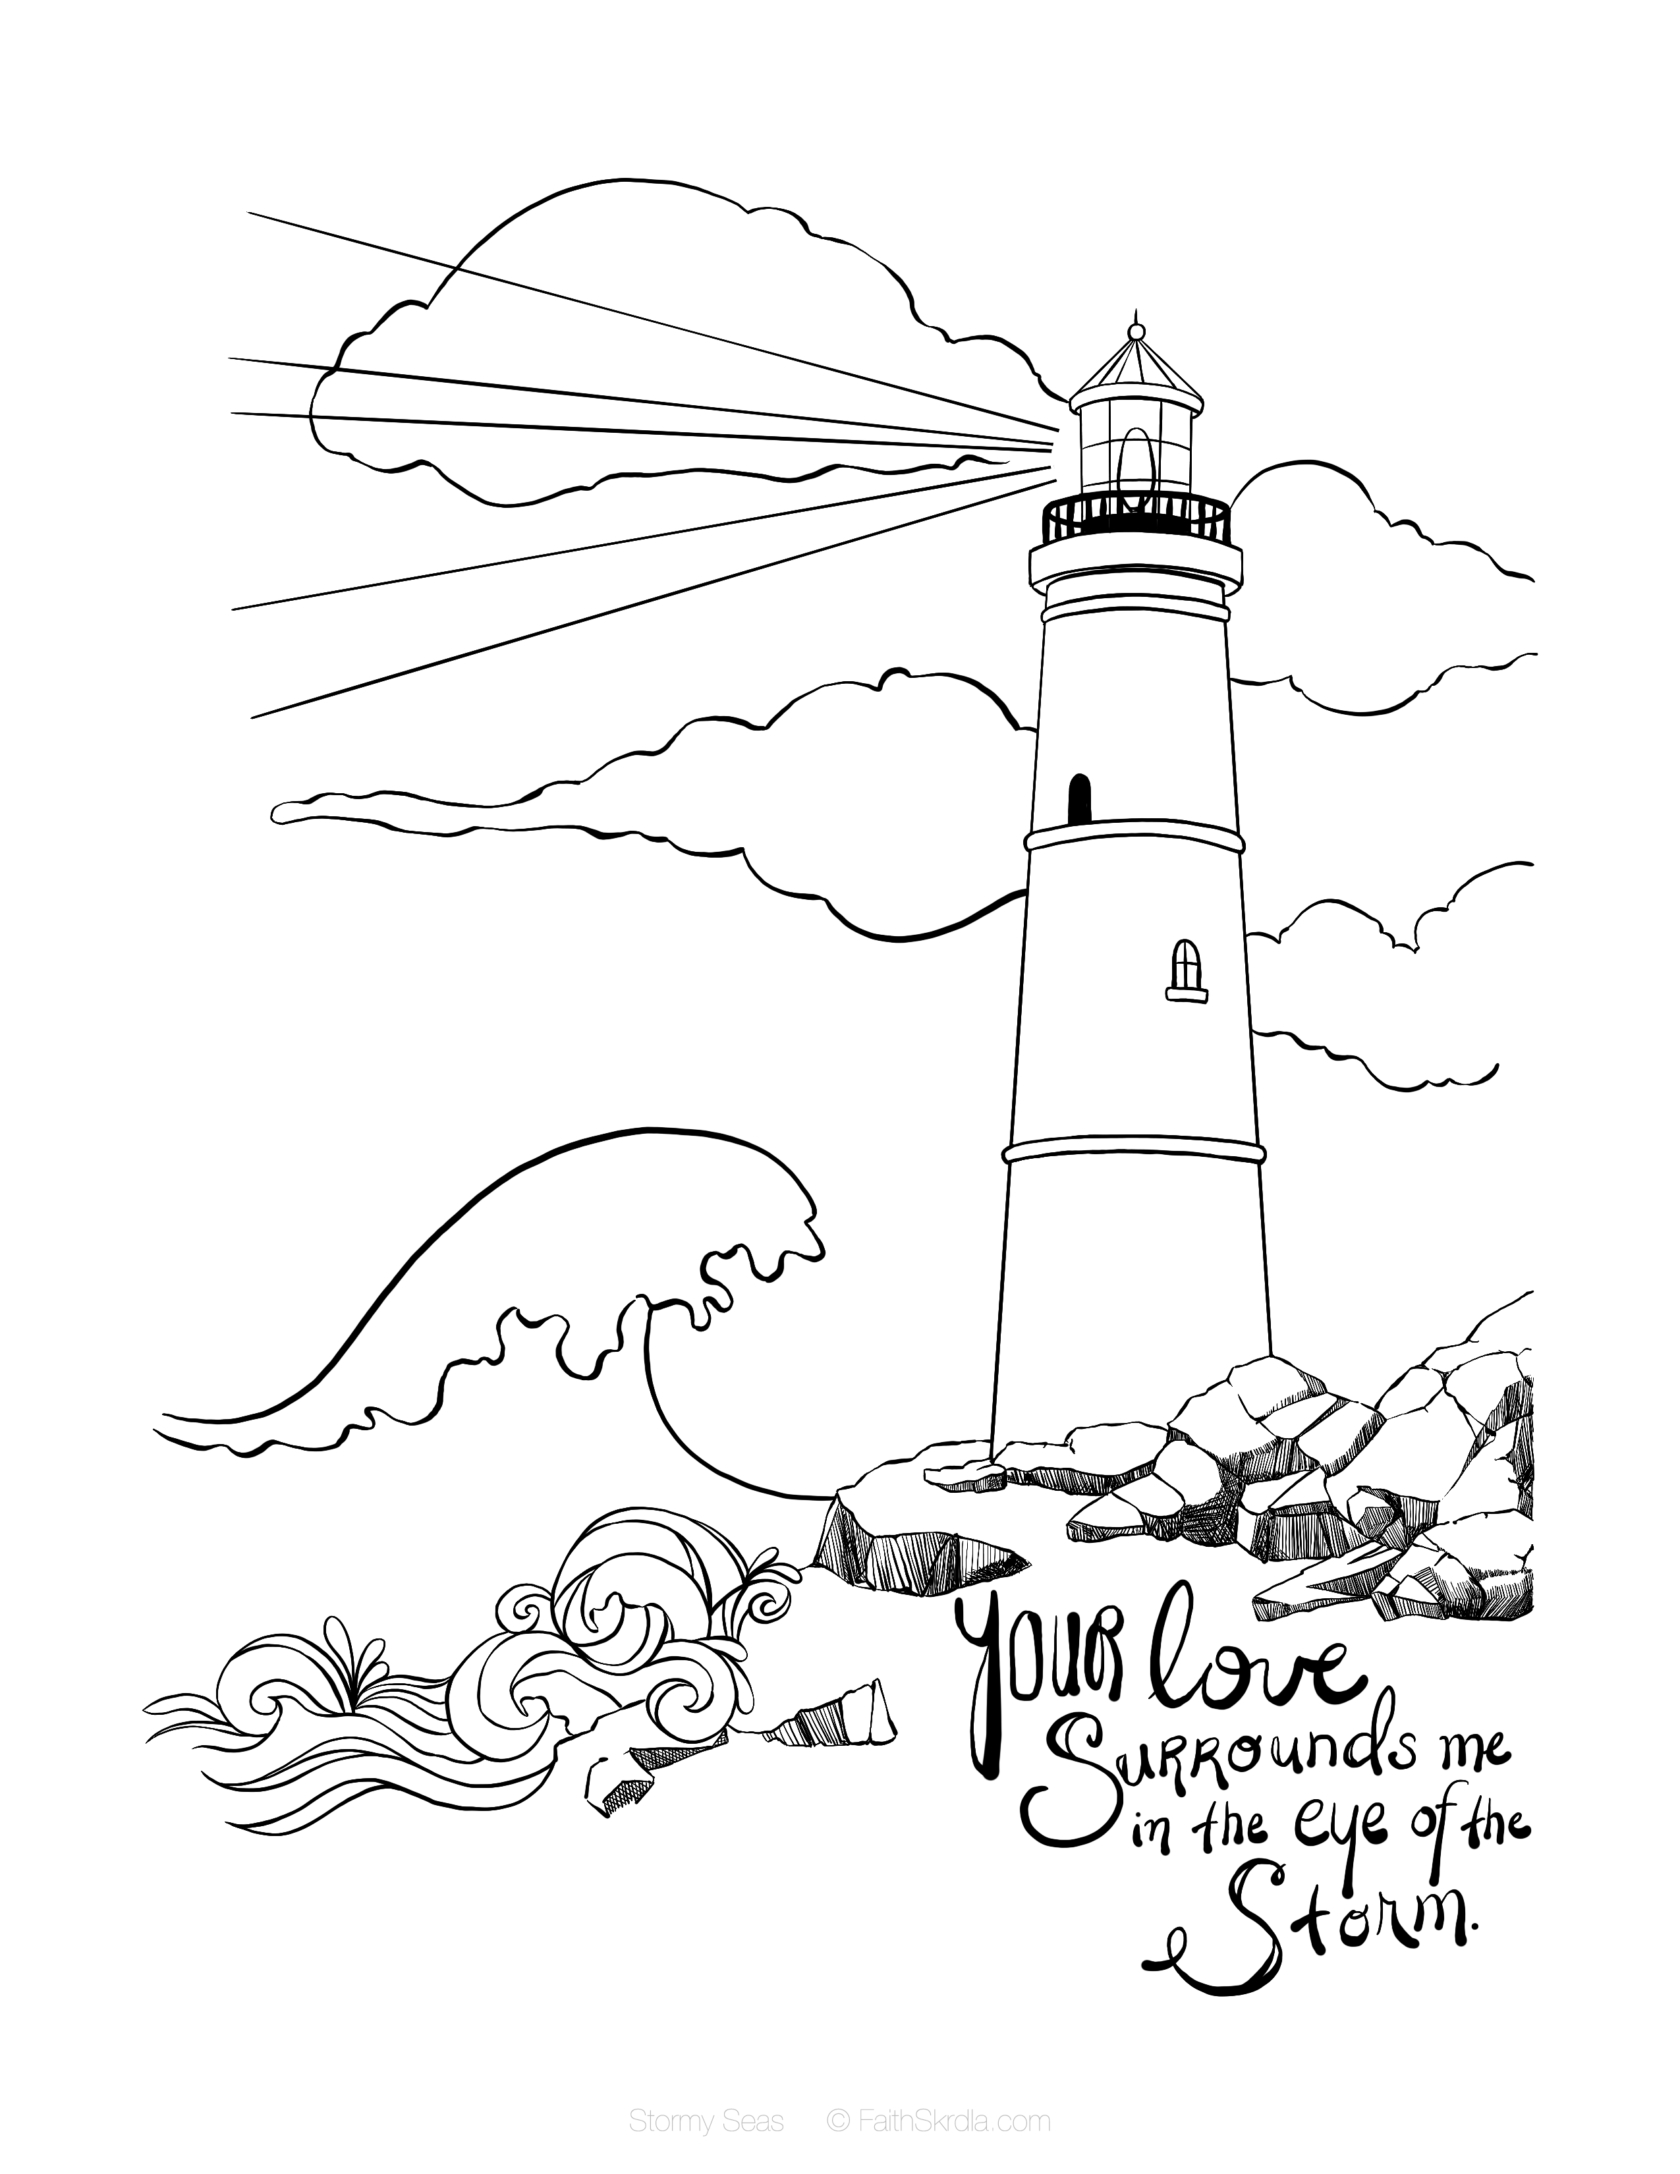 psalm 119 105 coloring pages Download-Romans 8 28 Bible Journaling themes of light guidance rock Jesus stilling the storm Mark 4 39 Psalm 107 23 31 etc Lighthouse Free Coloring Page 13-t